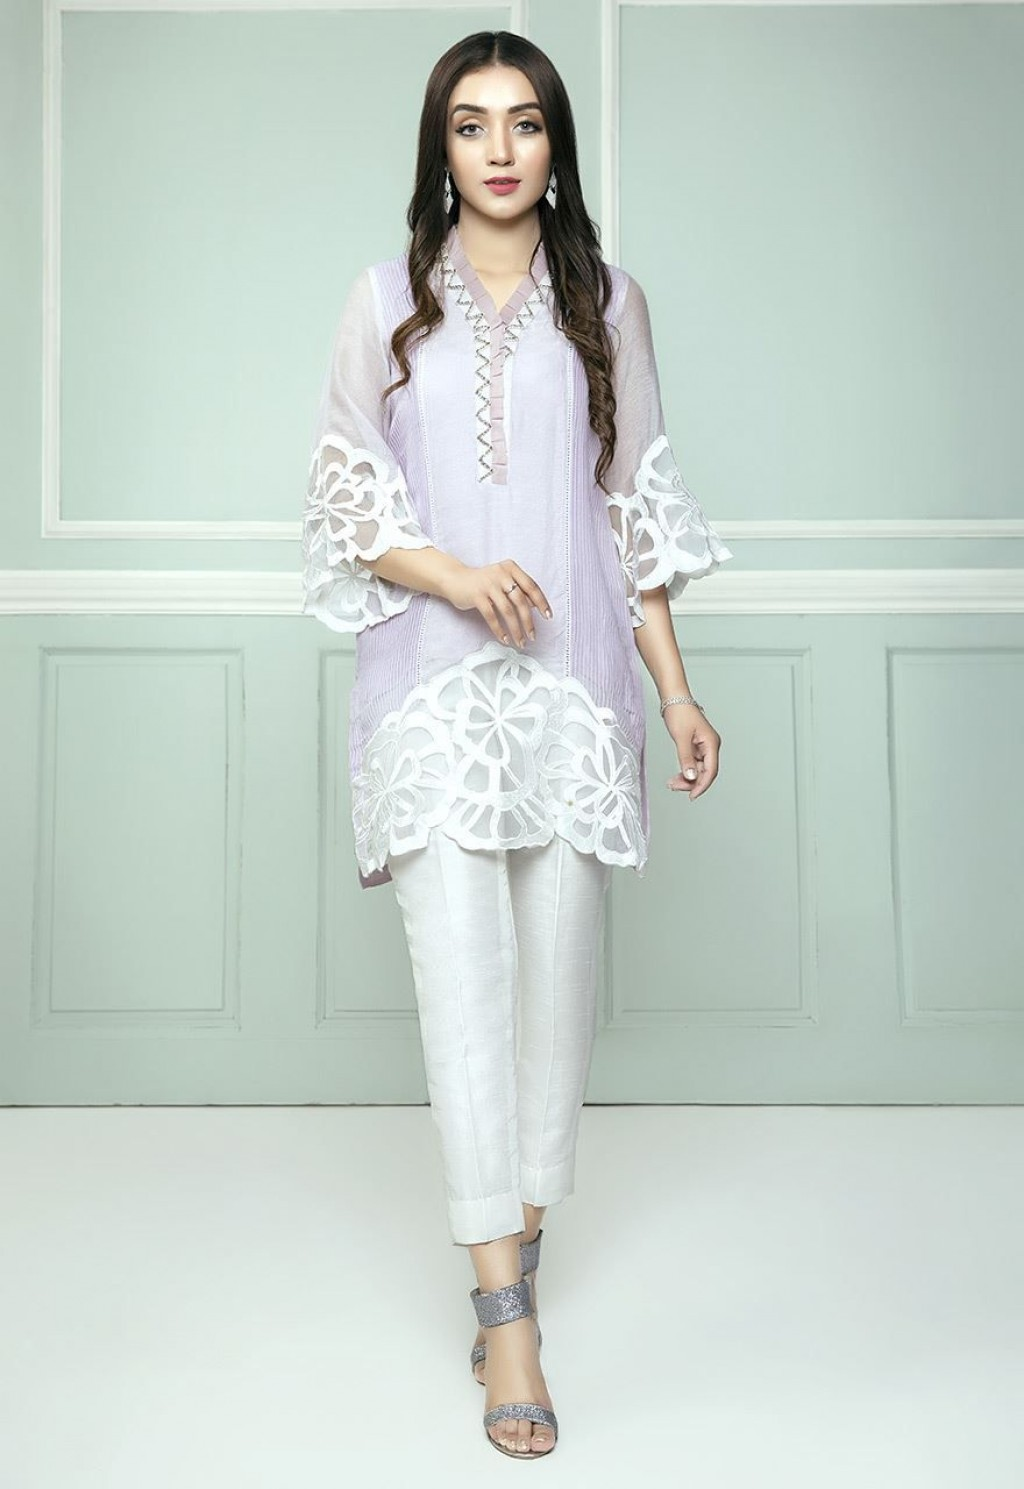 018 Essay Example On My Favourite Dress Salwar Sensational Kameez Large